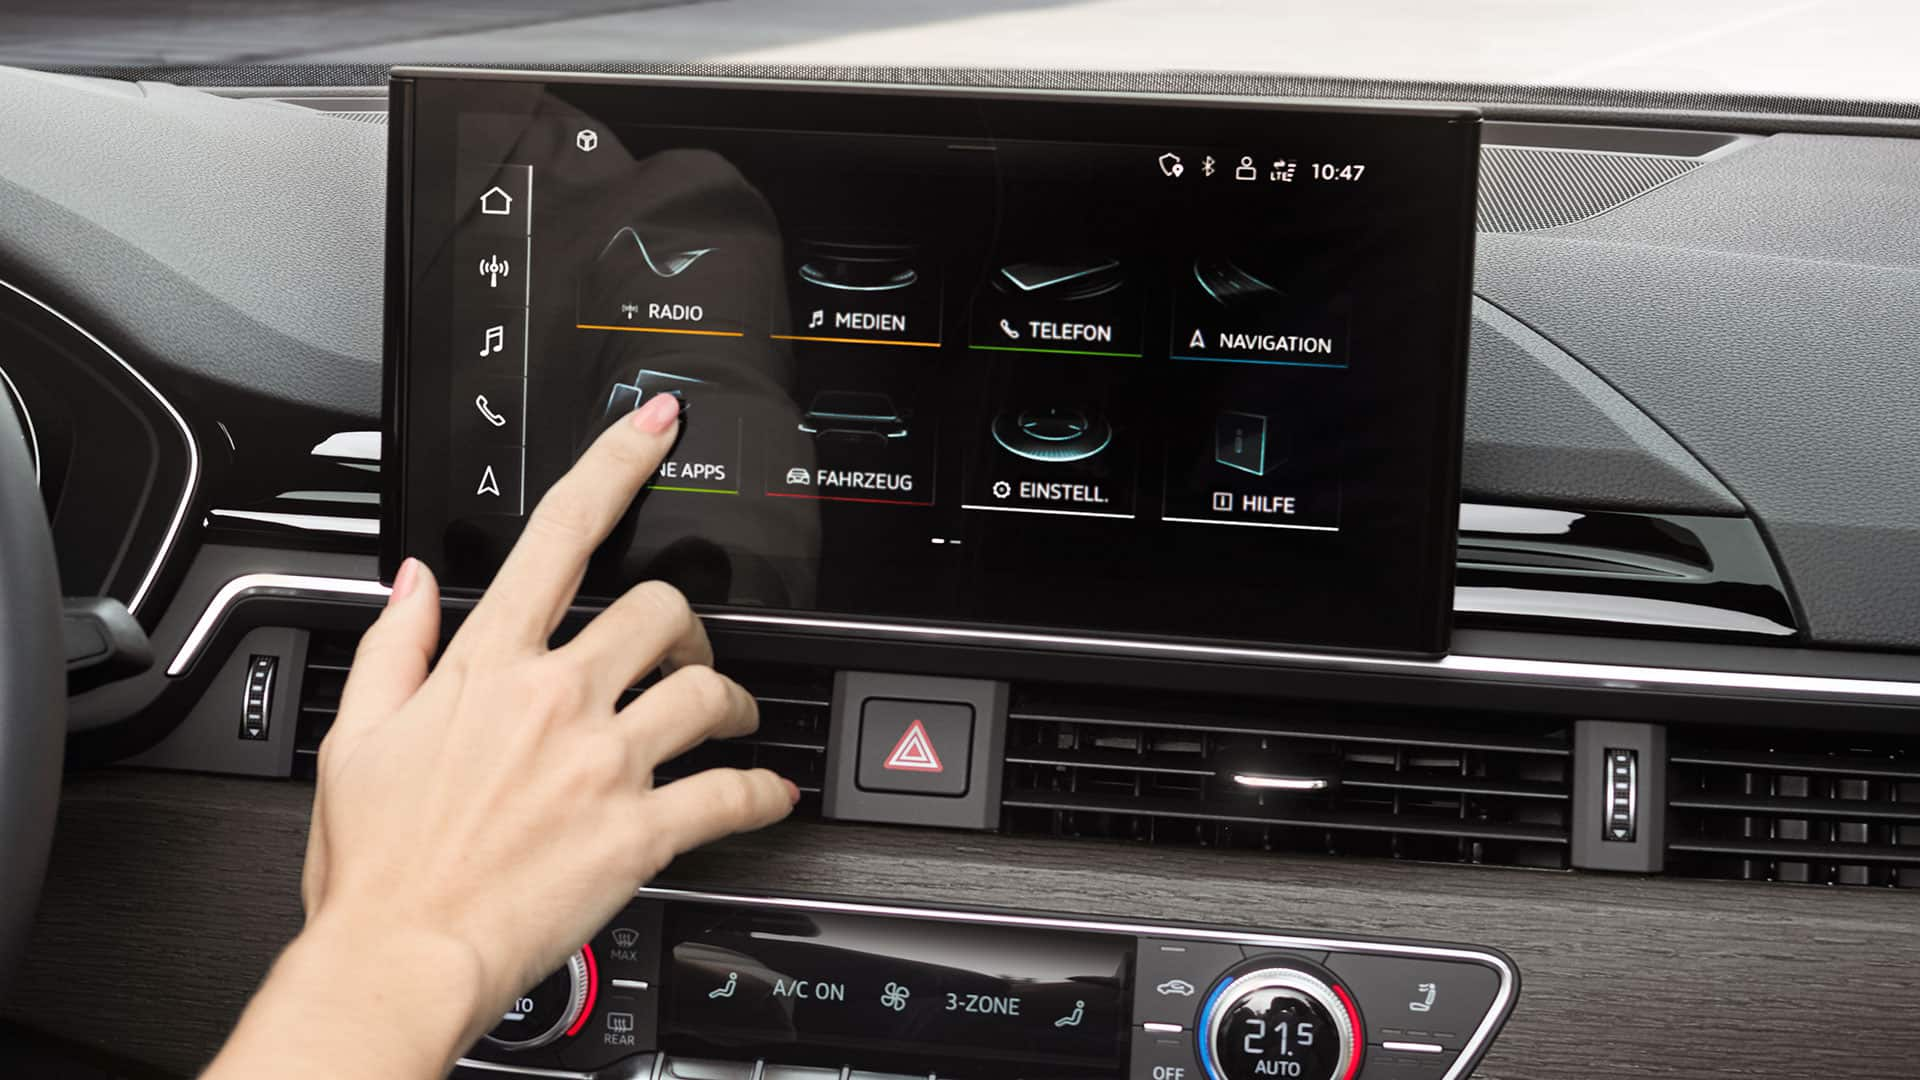 MMI touch-Display in the Audi A5 Coupé